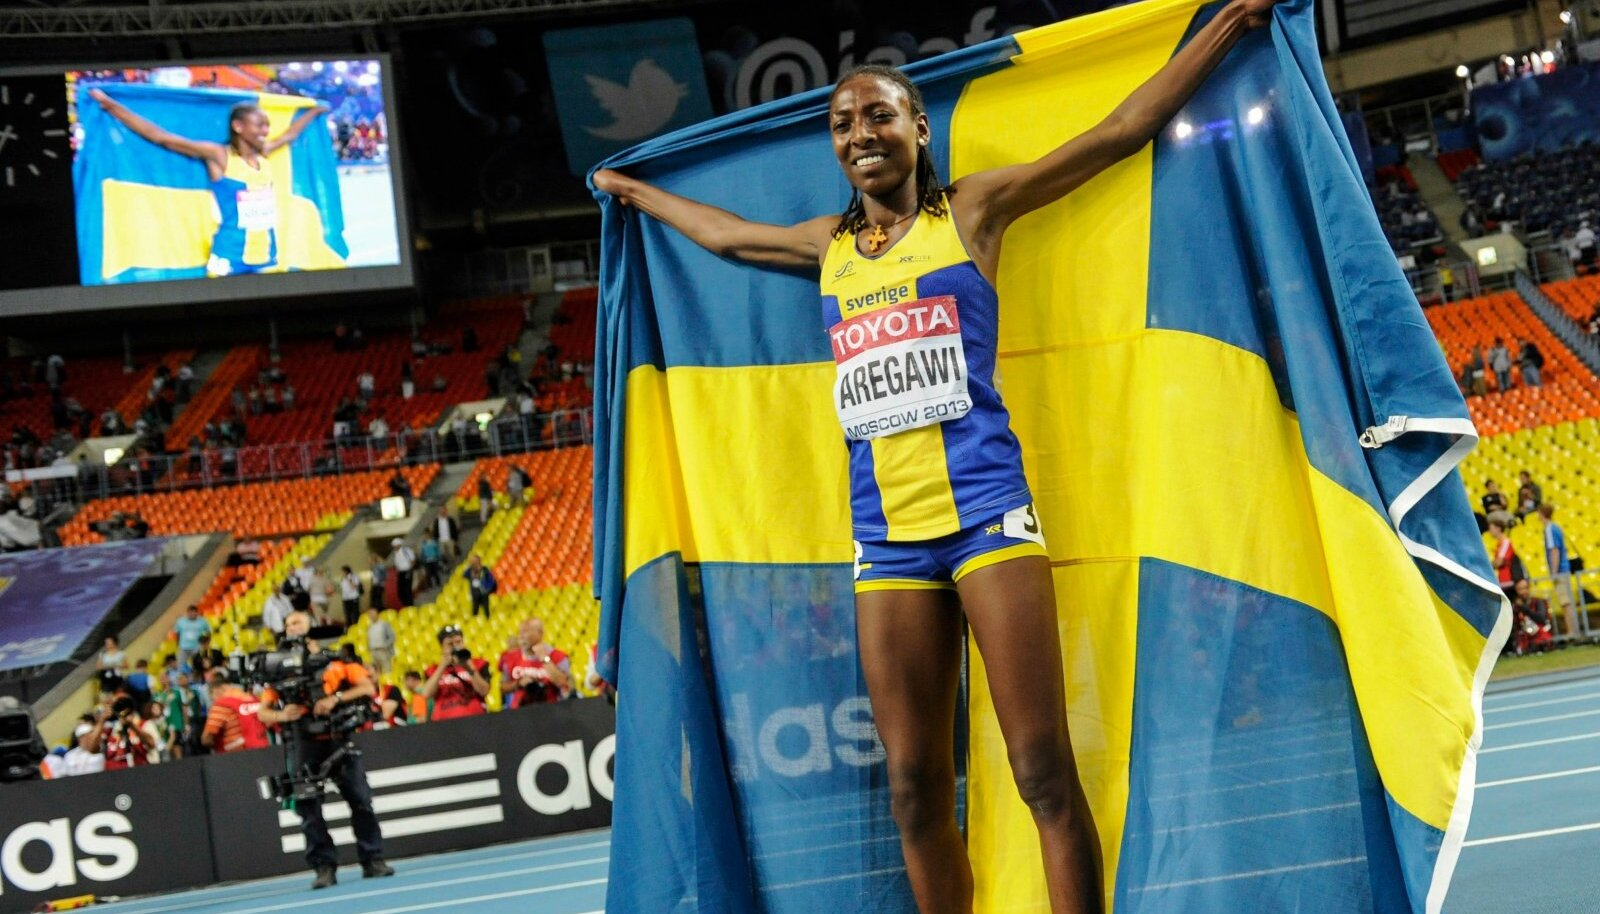 AREGAWI 1500M TRACK AND FIELD GOLD